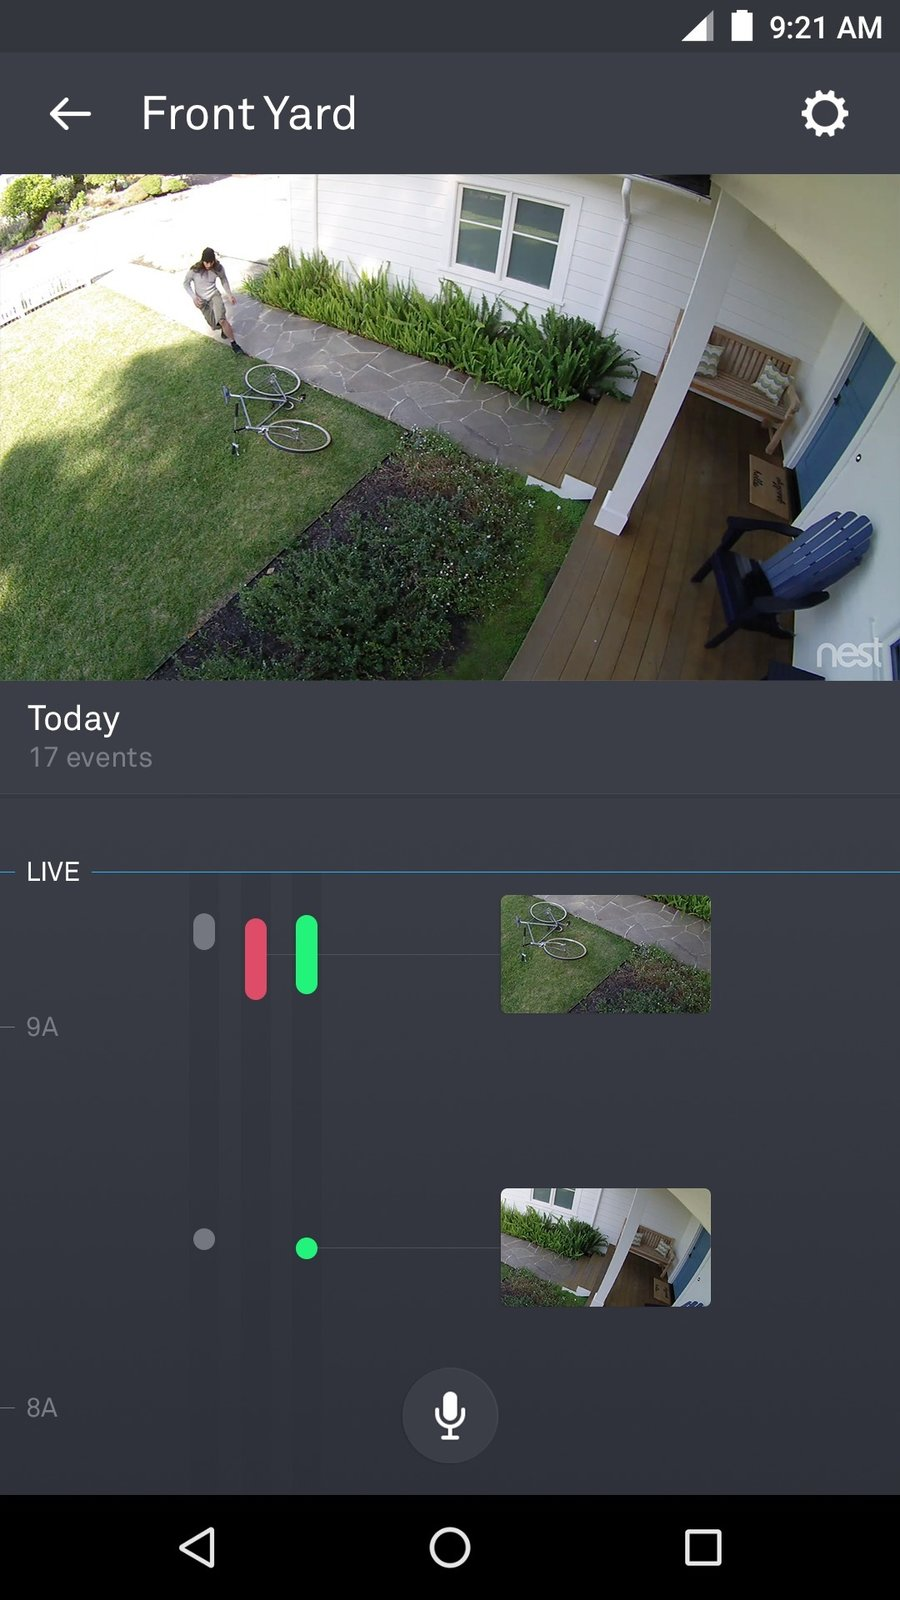 All Nest Cam owners get a free 3-hour video history with Sightline. Nest Aware subscribers are able to scroll further through a continuous timeline with key moments highlighted through frames. Sightline allows users to zoom in on and replay important moments and delineate Activity Zones to monitor.